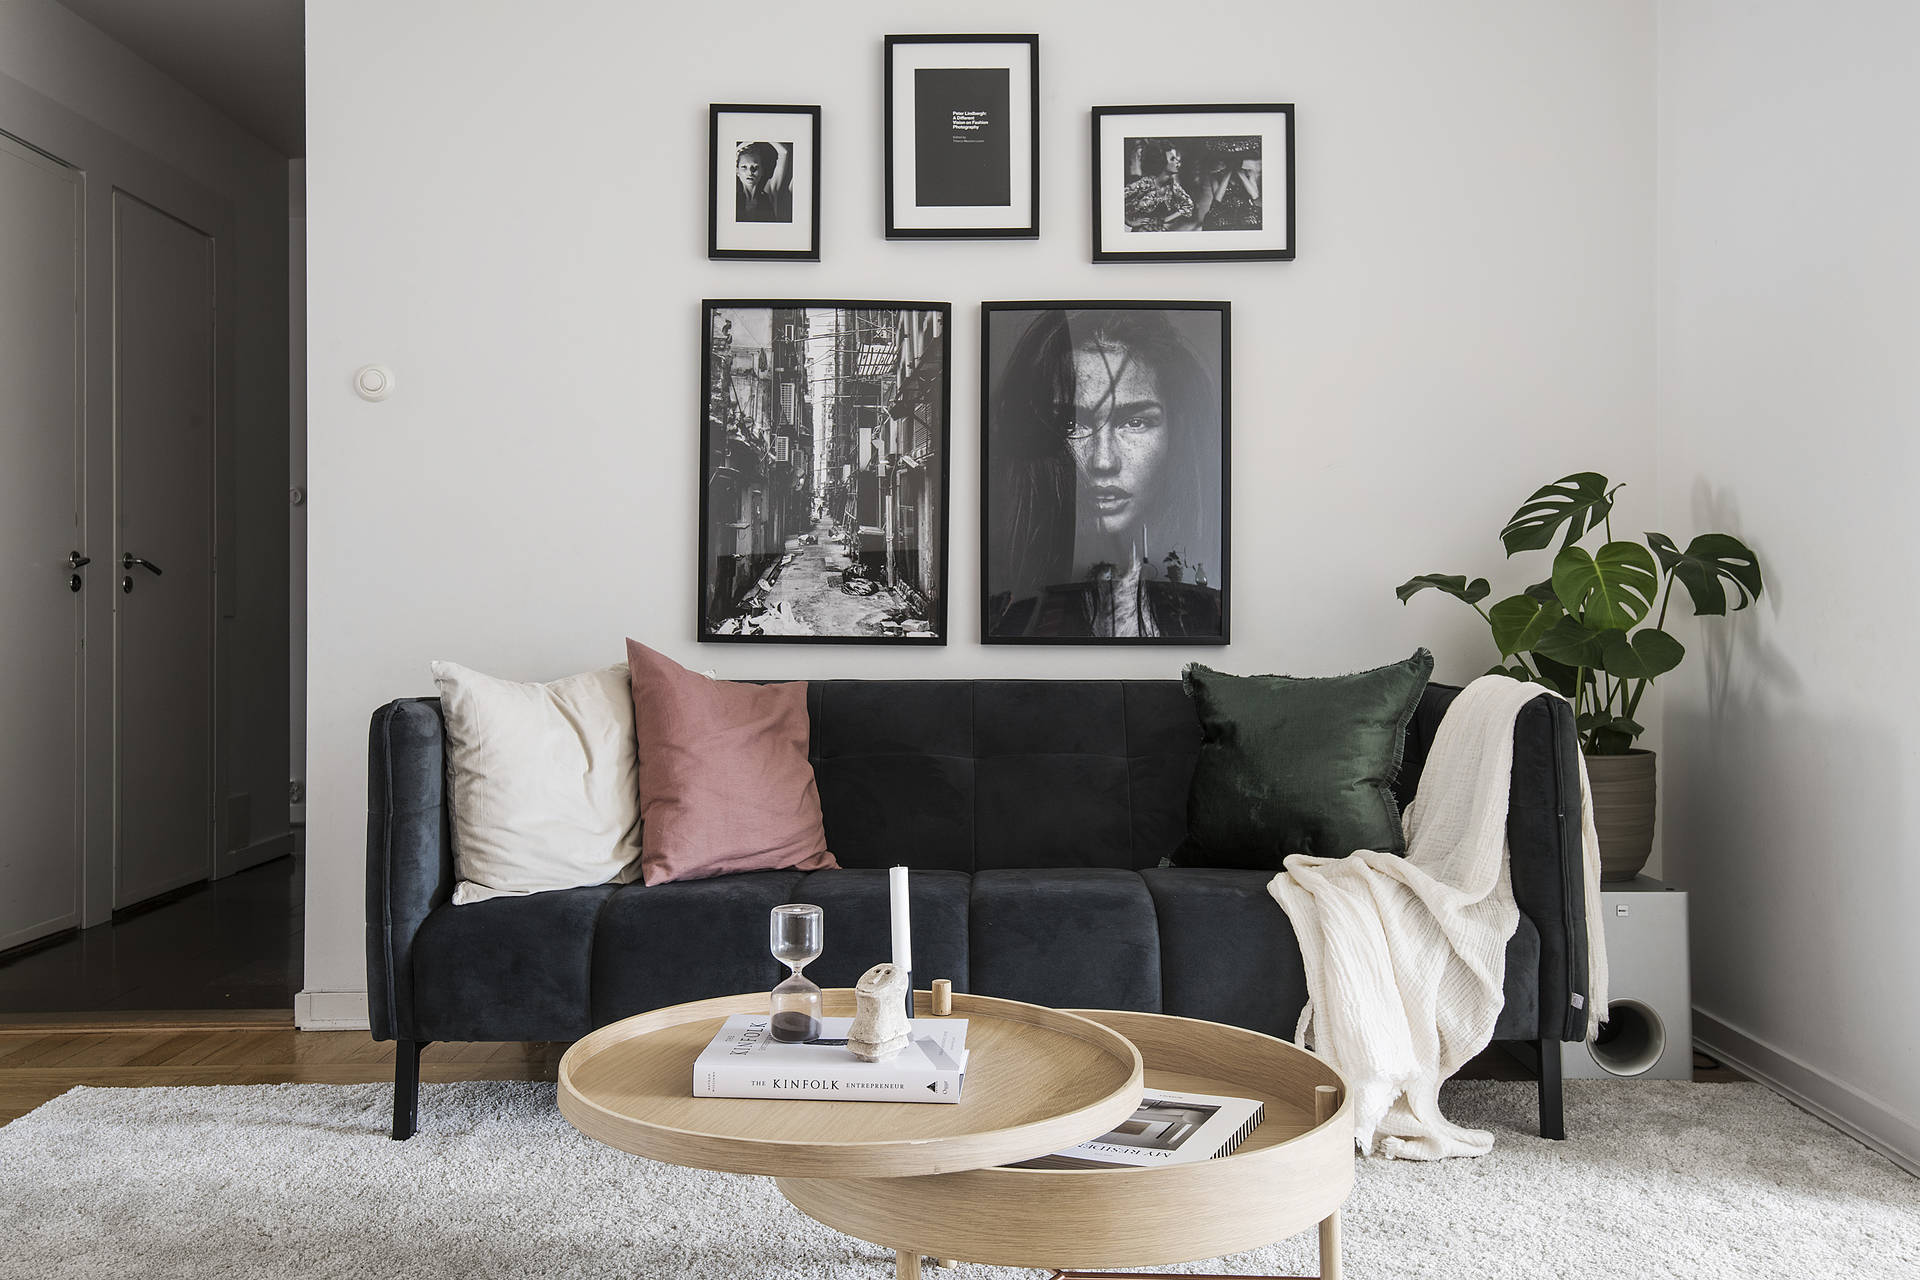 The otherwise monochromatic interior is softened up with wood, green plants and small pops of colour.